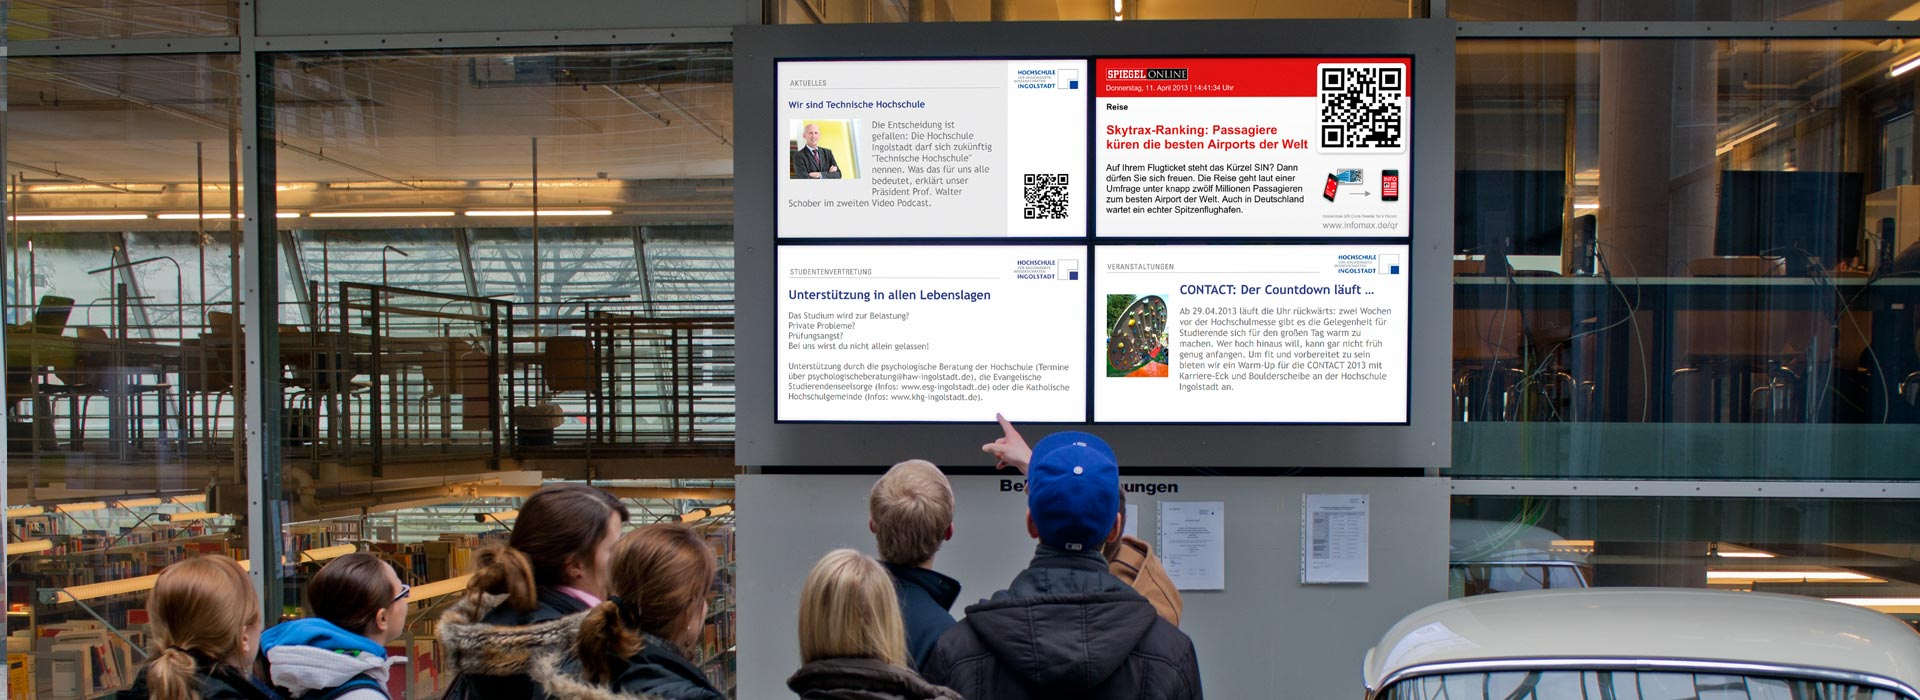 TH Ingolstadt | infomax liefert Display-Informationssystem für TH Ingolstadt